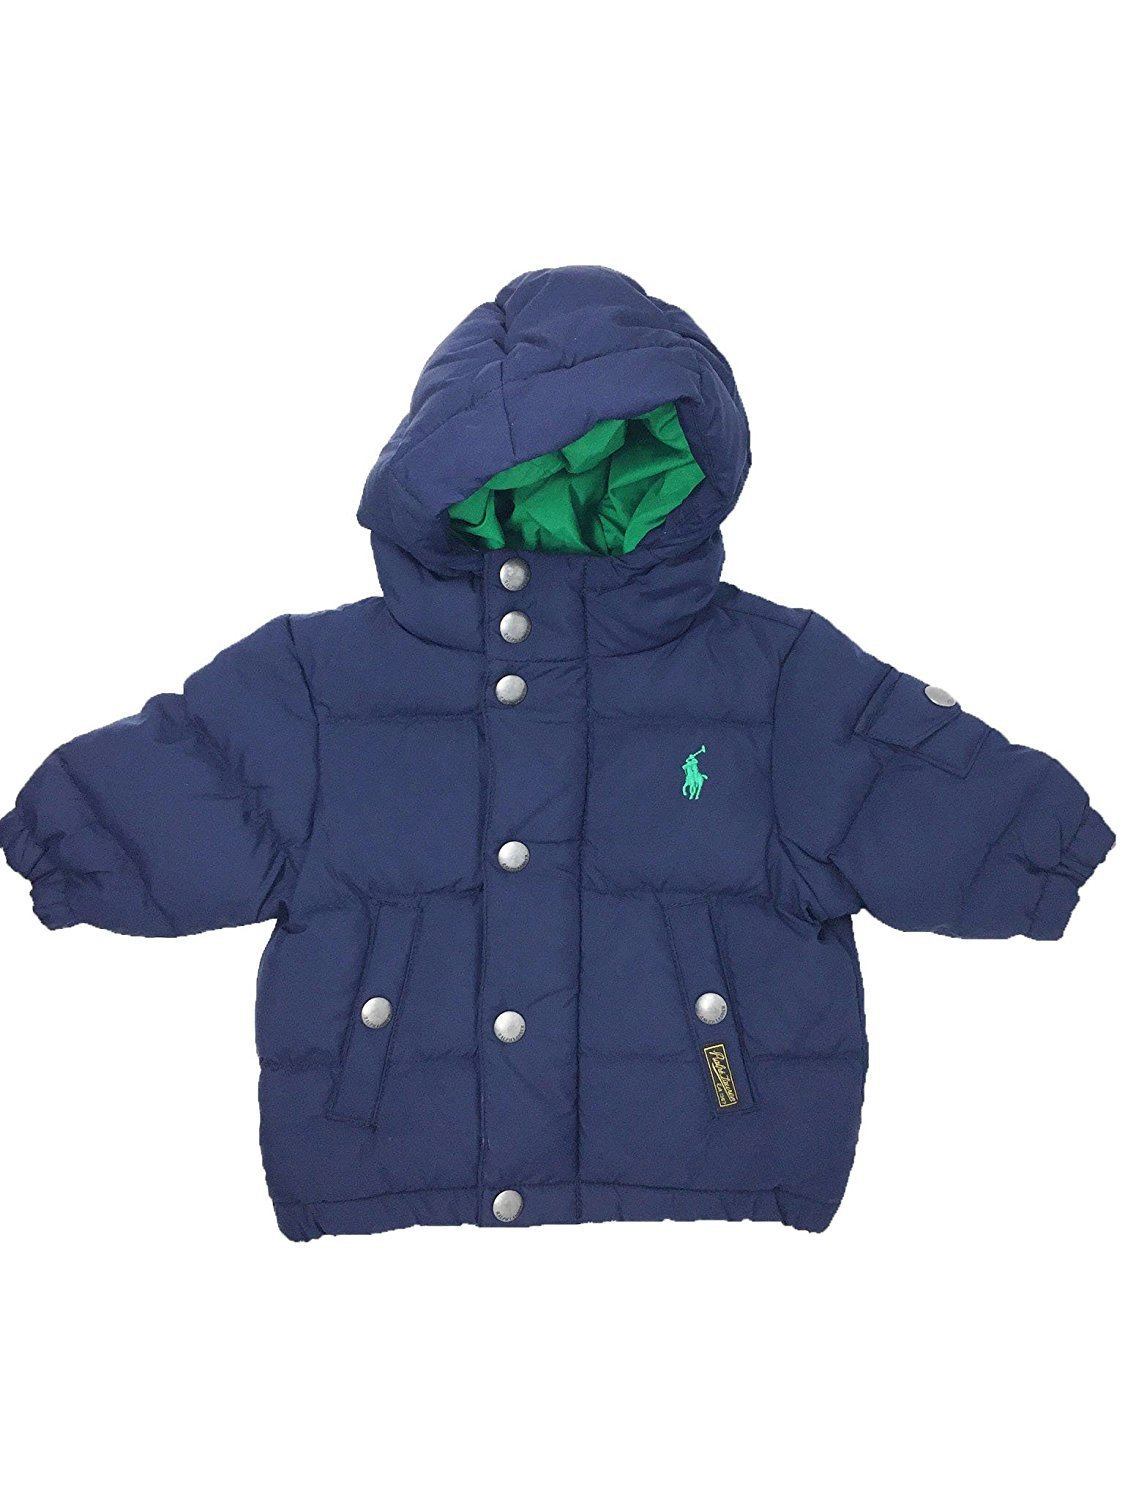 Ralph Lauren Feather Down French Navy Blue Puffy Coat 3 Months